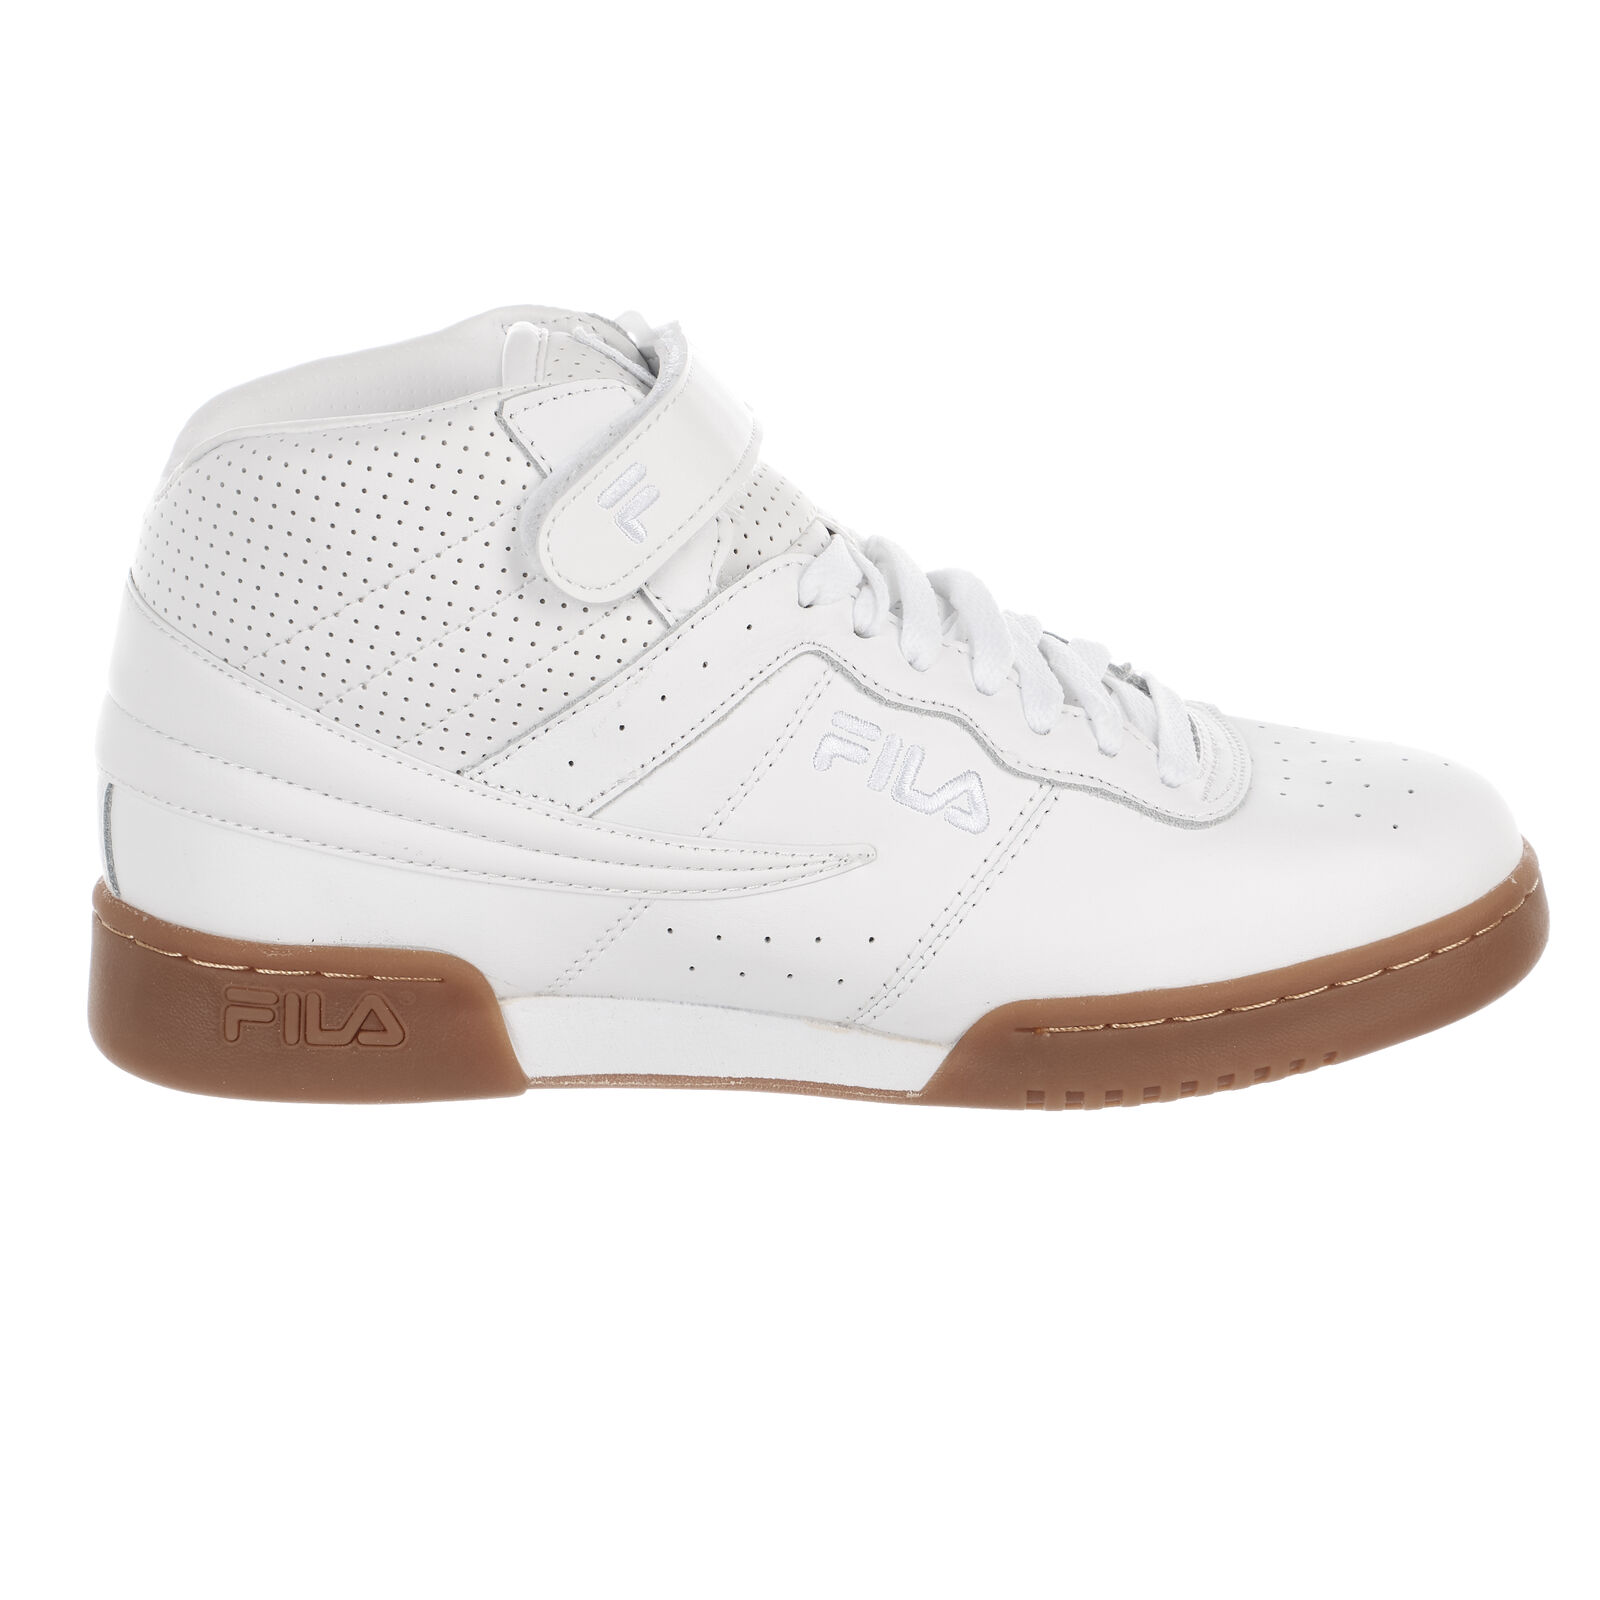 Fila F-13 Vulc Sneakers -  Mens